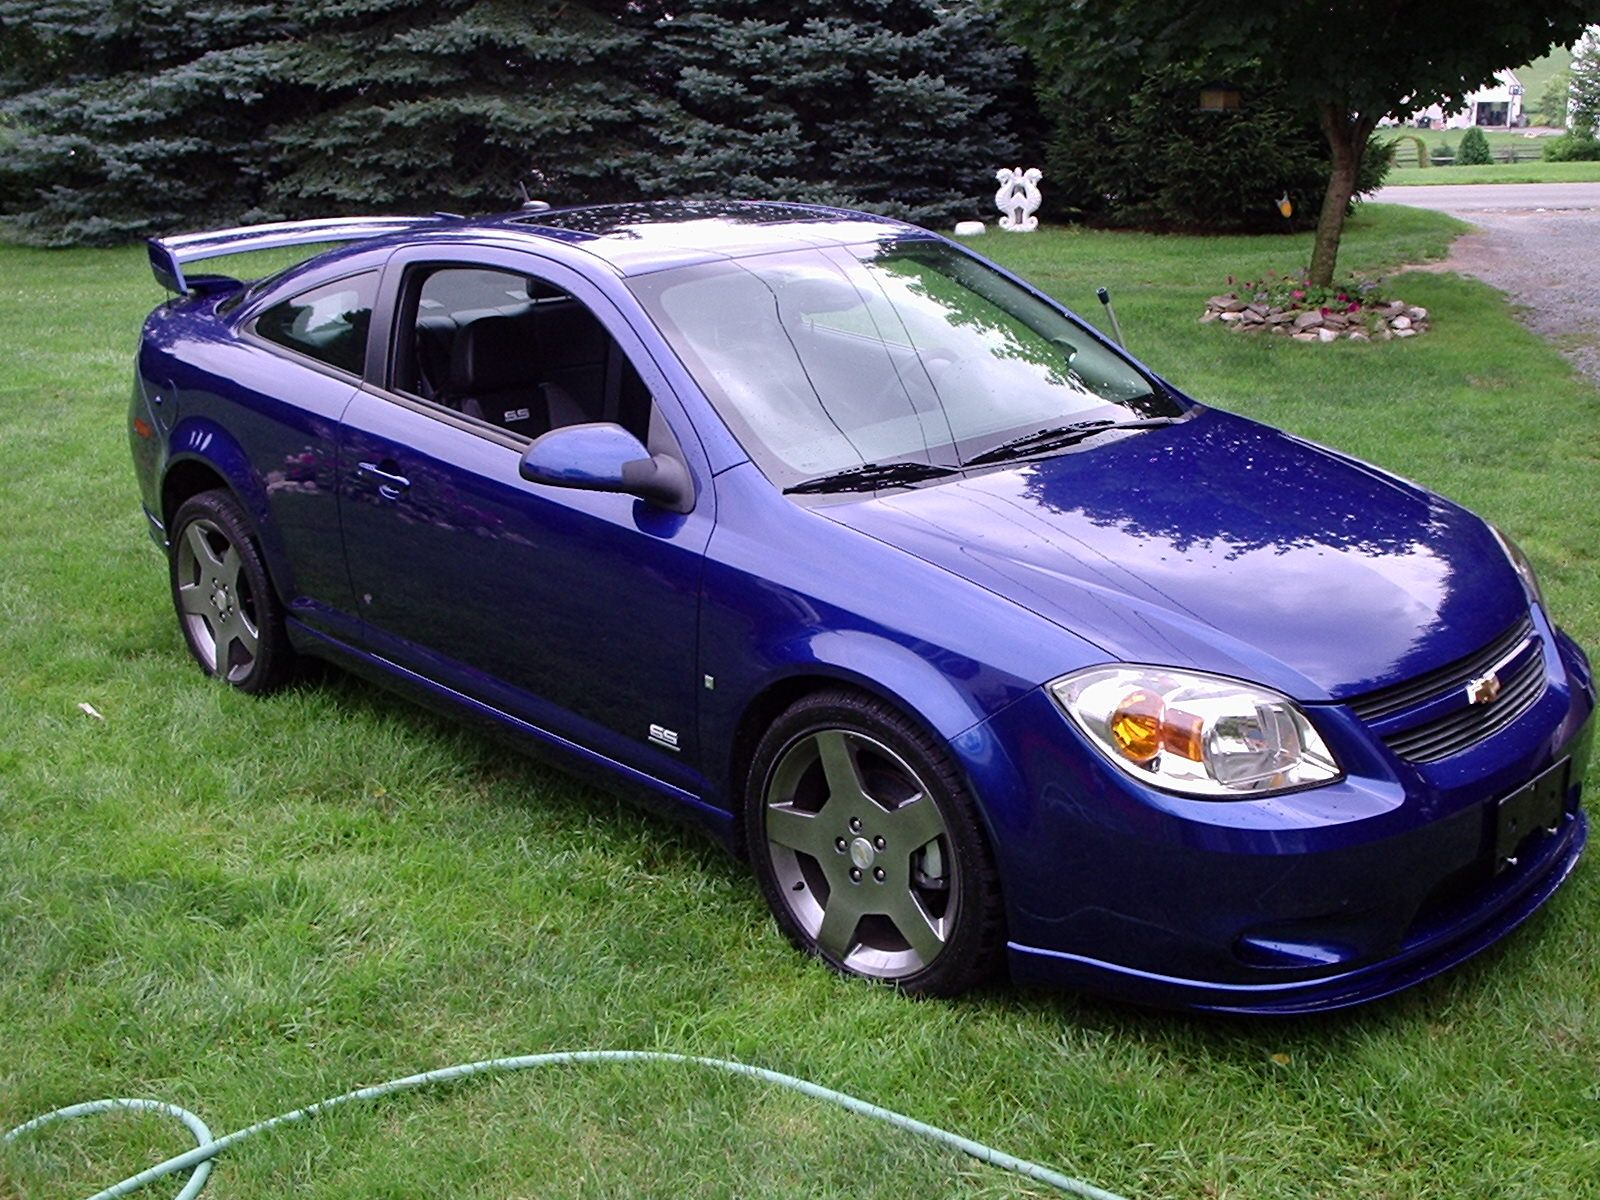 Fast 2006 chevrolet cobalt ss mile drag racing videos and timeslips